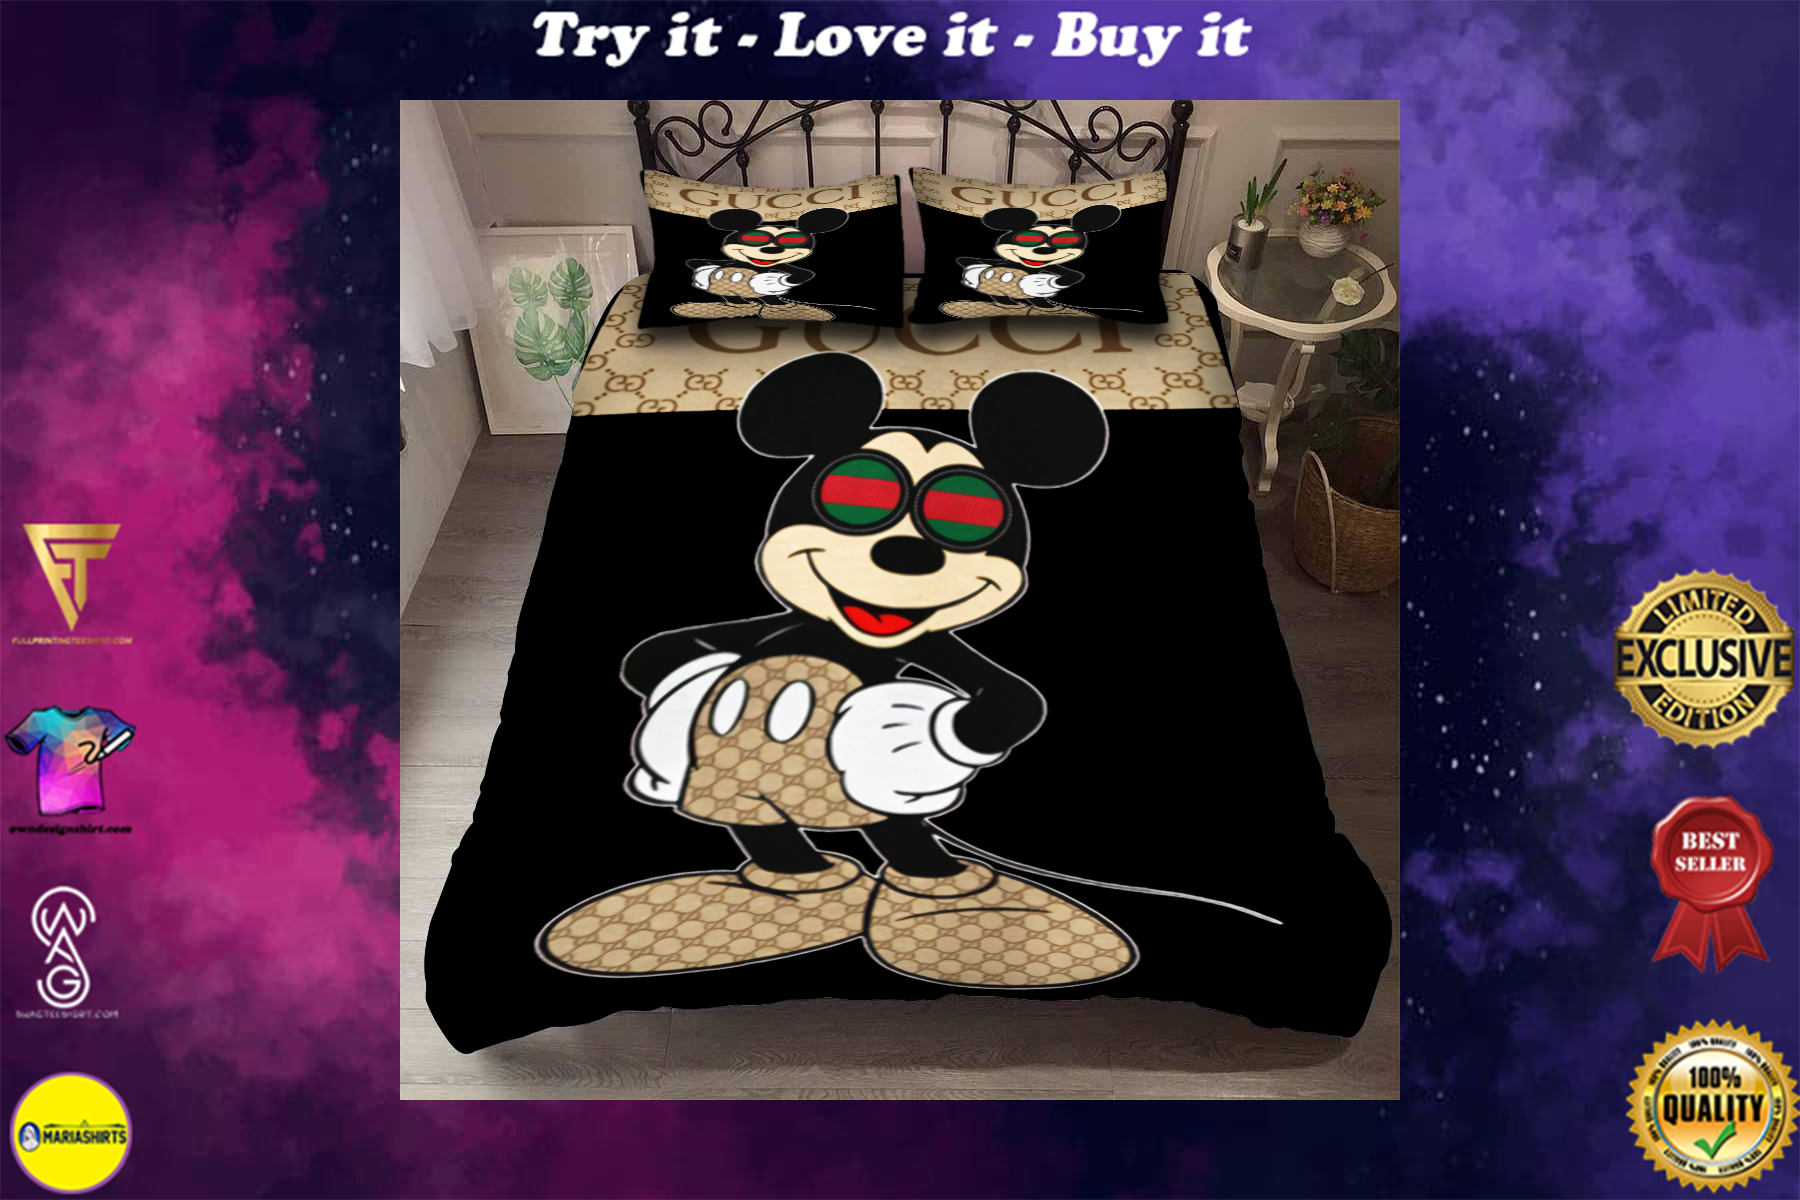 [special edition] mickey mouse with gucci monogram bedding set - maria